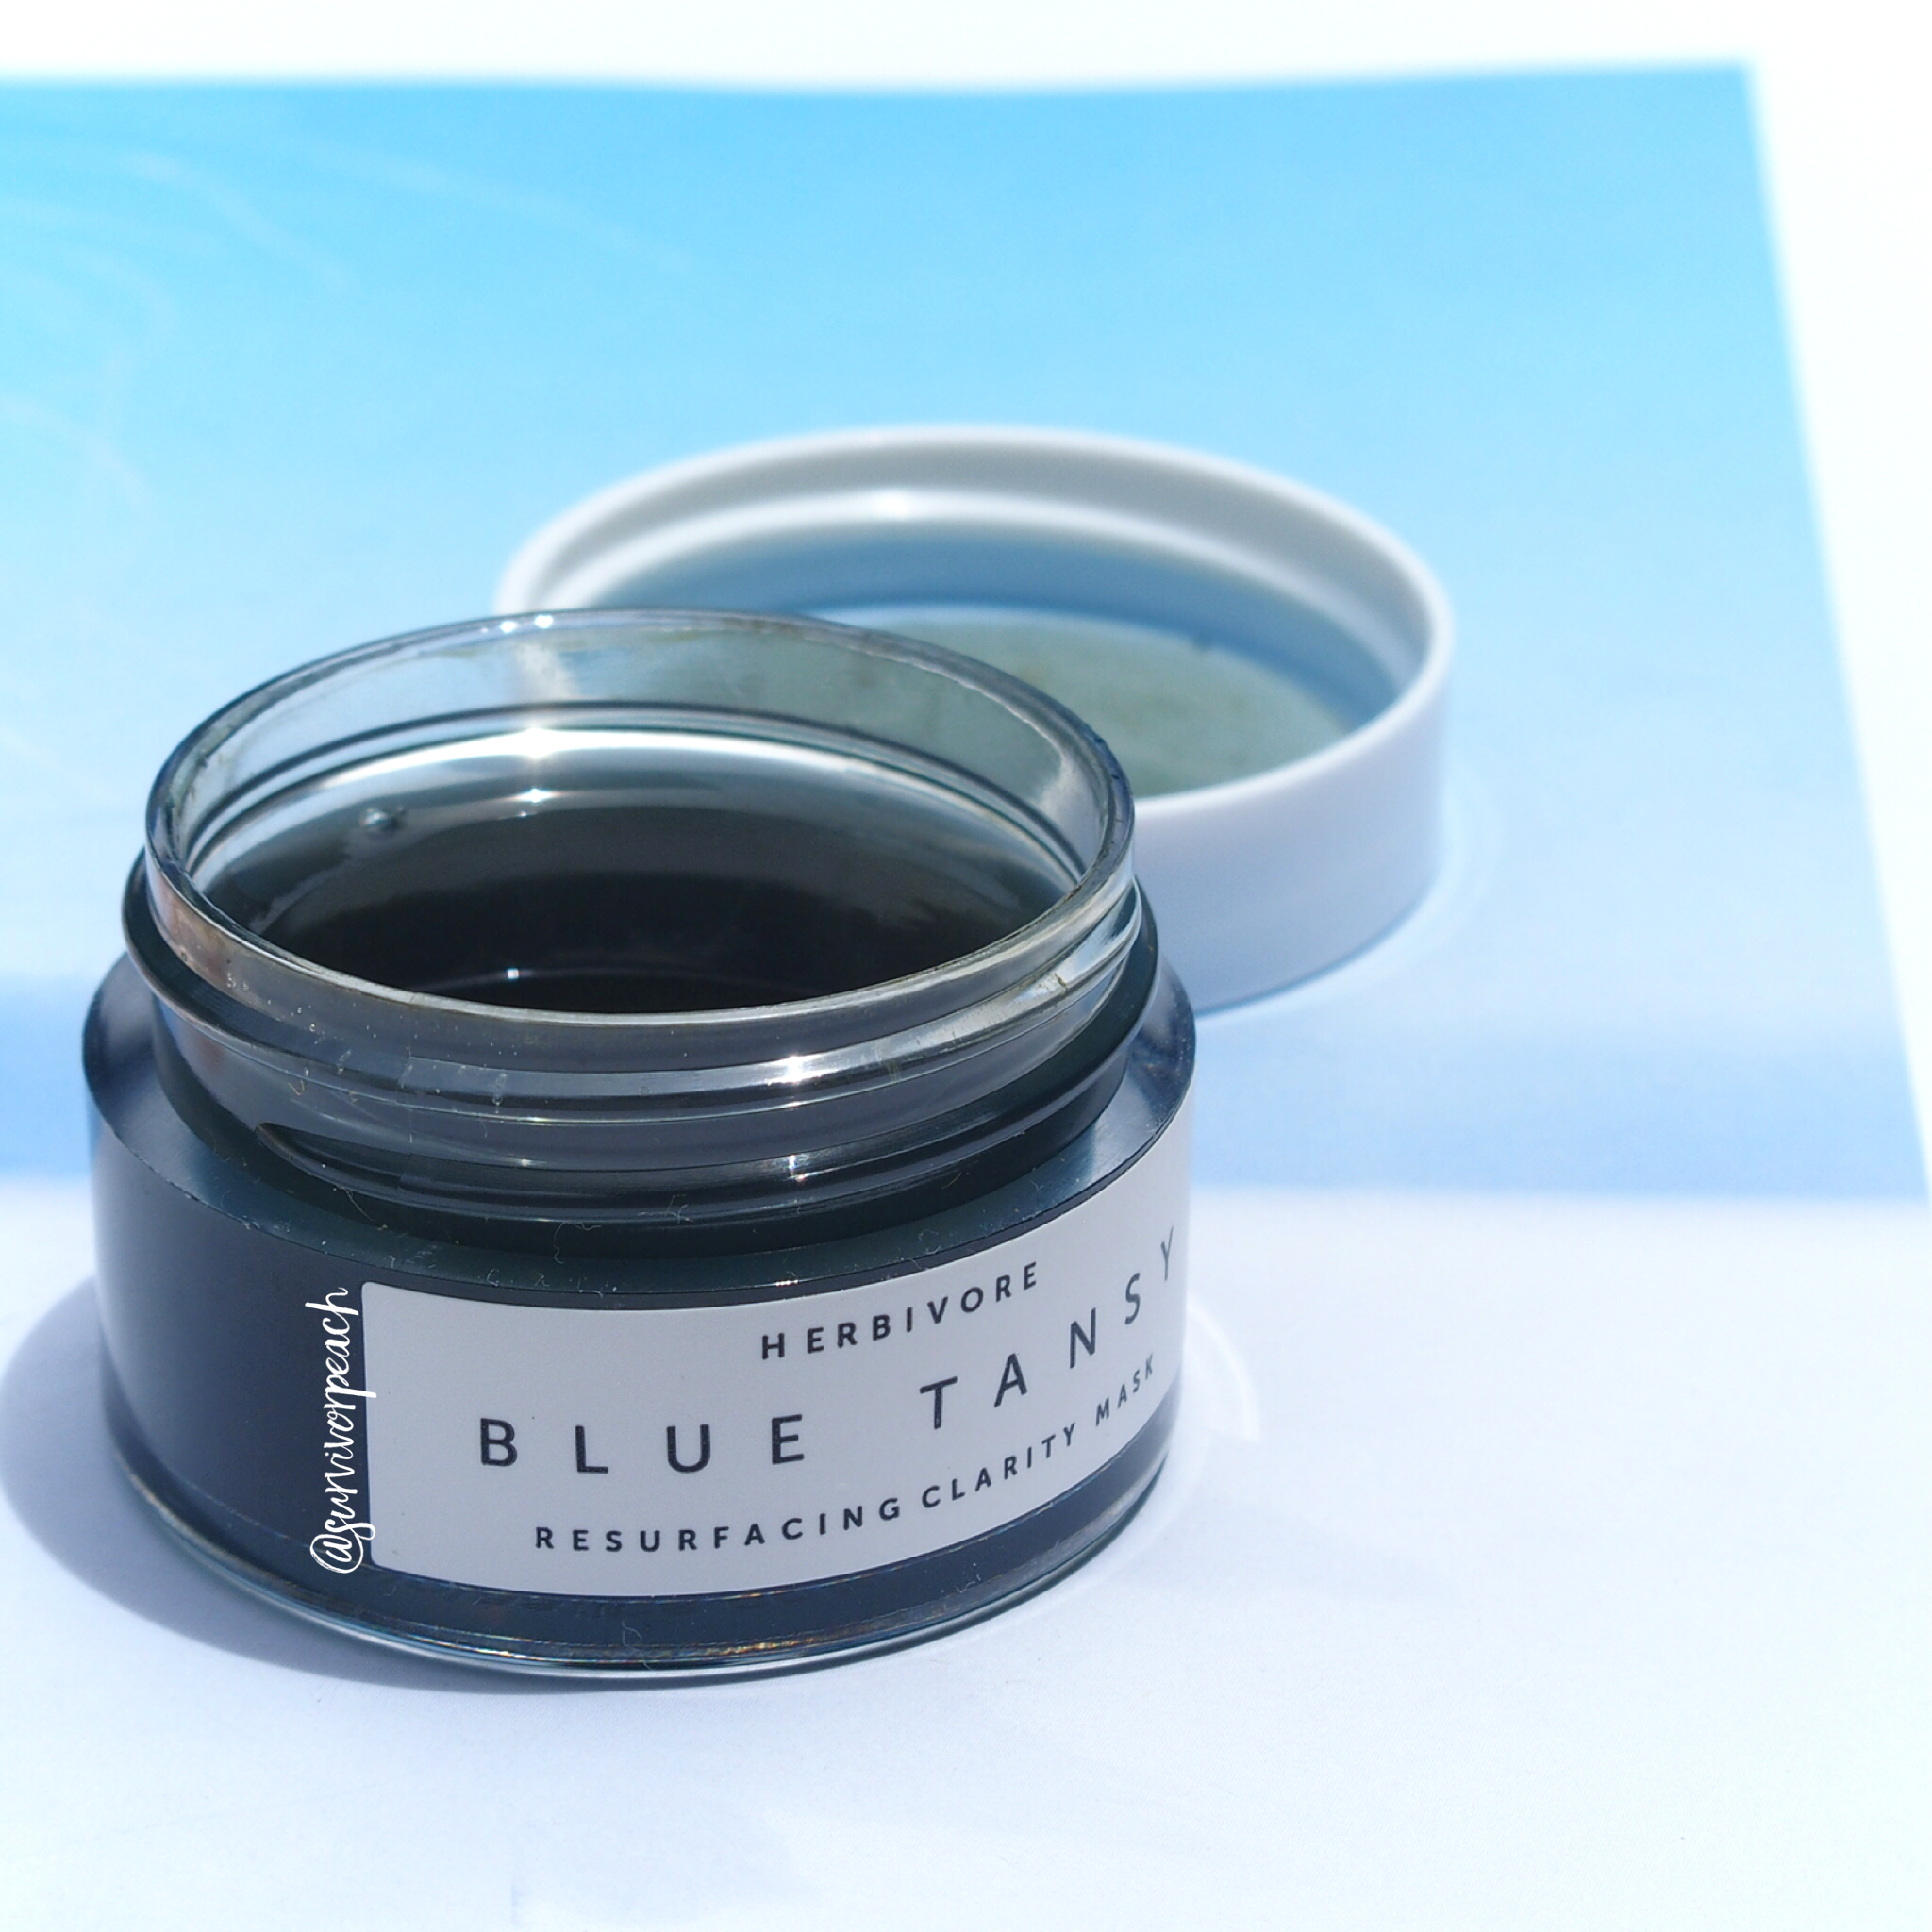 Herbivore Botanicals Blue Tansy Resurfacing Clarity Mask.